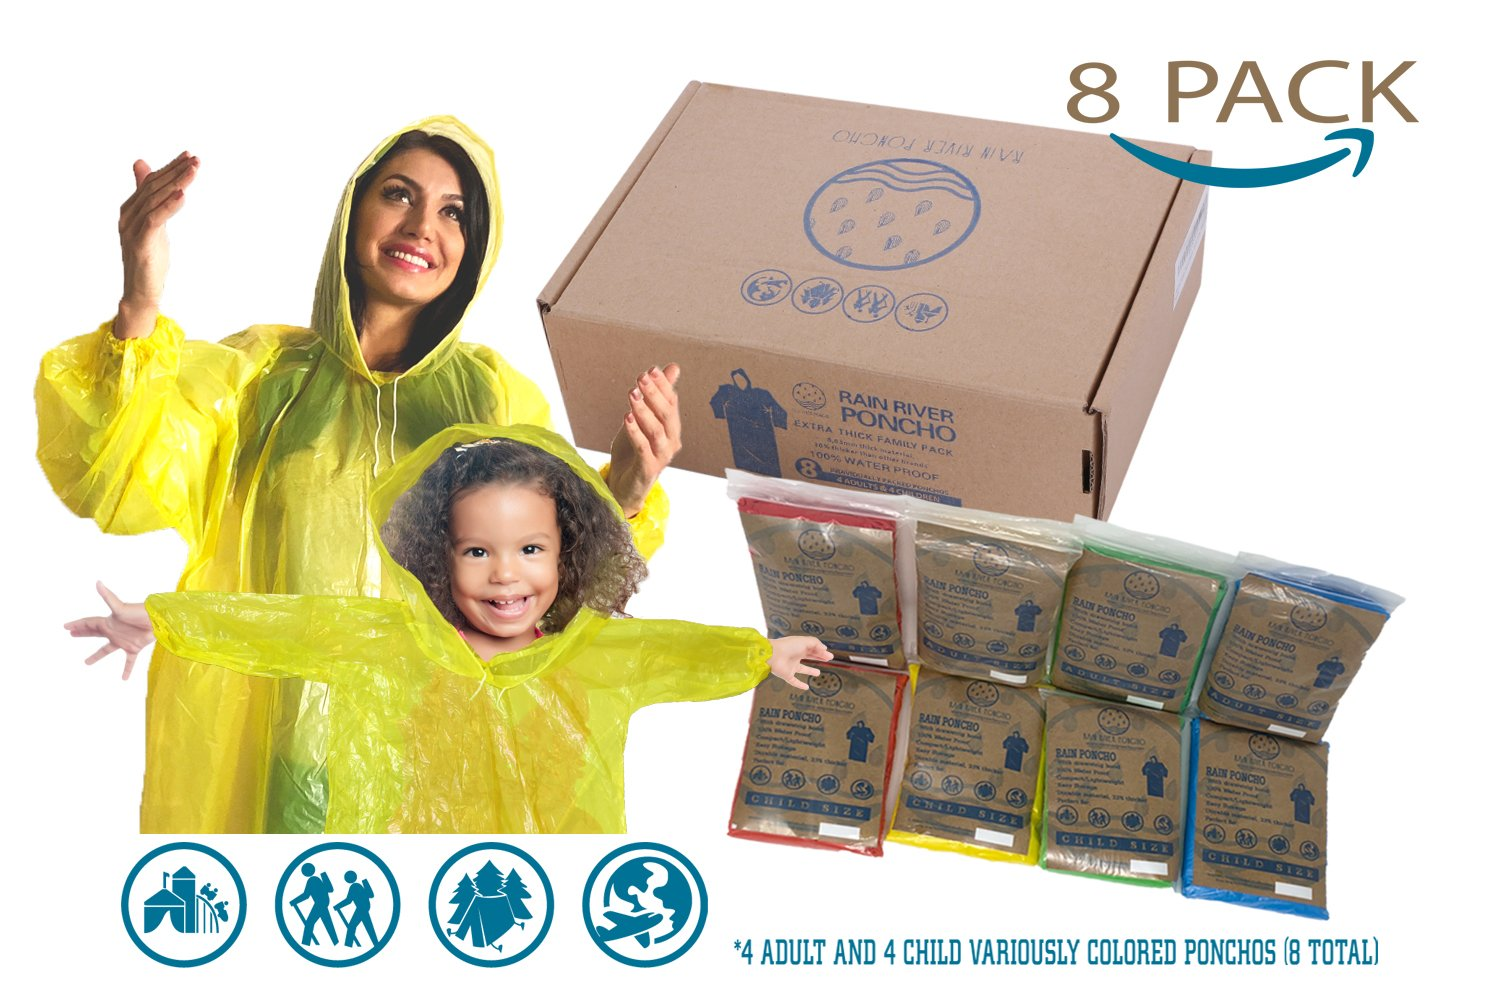 Ponchos Family Pack Rain Poncho - REUSABLE Rain Poncho for Kids Poncho Disposable Disney Poncho for Adults Disposable 8 Rain Poncho Family Pack Pancho